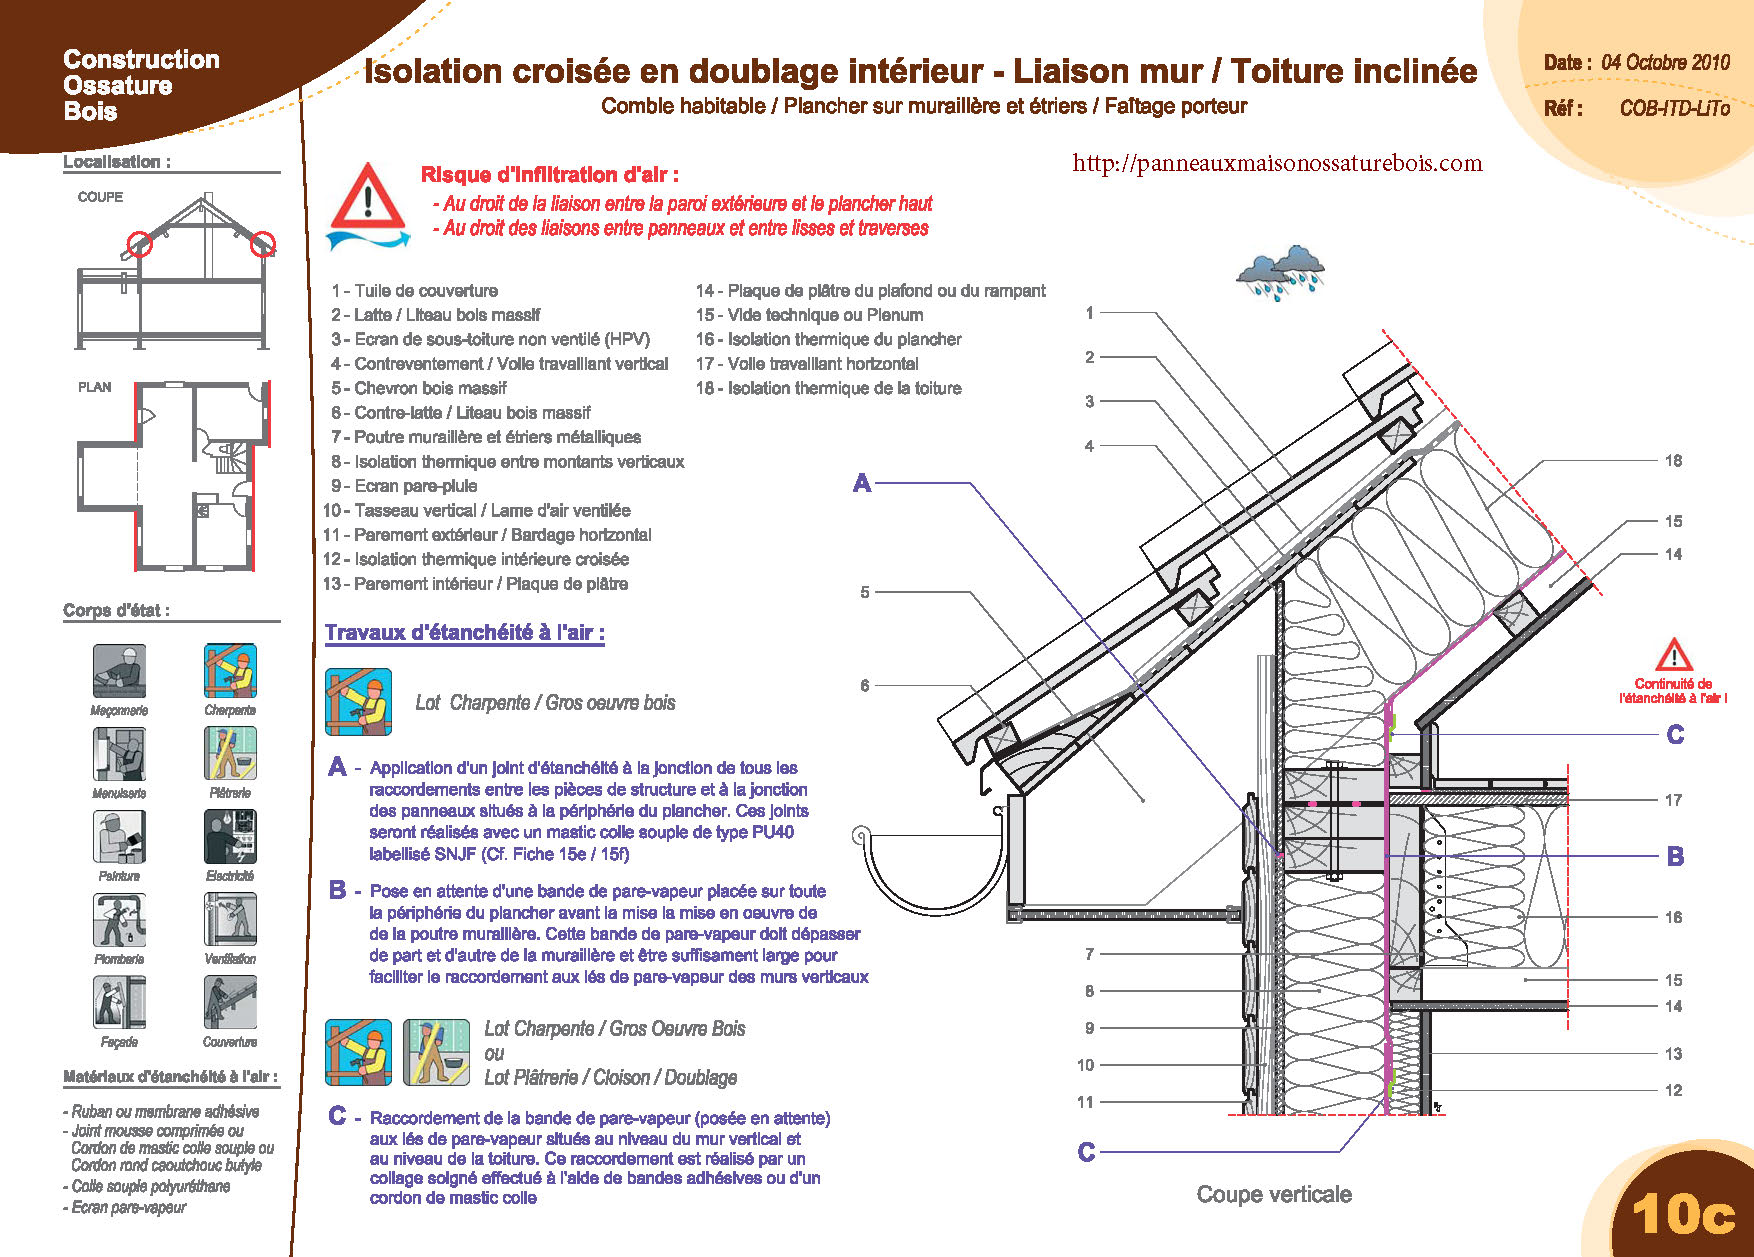 coupes construtions ossature bois complets_Page_35